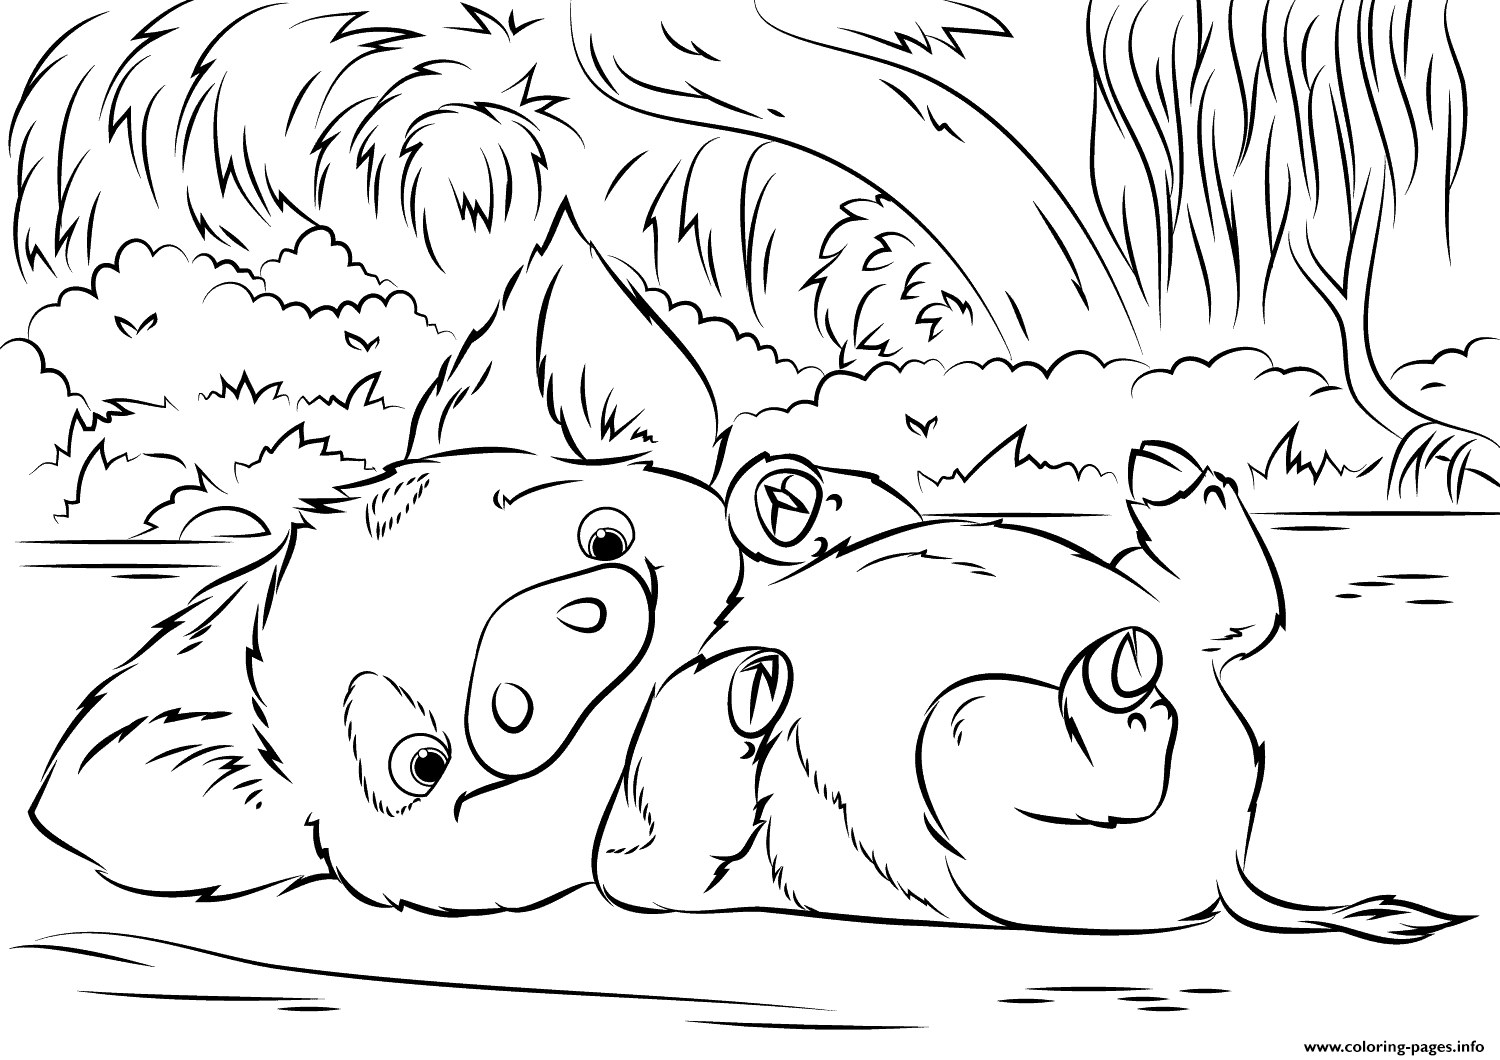 Pua Pet Pig From Moana Disney Coloring